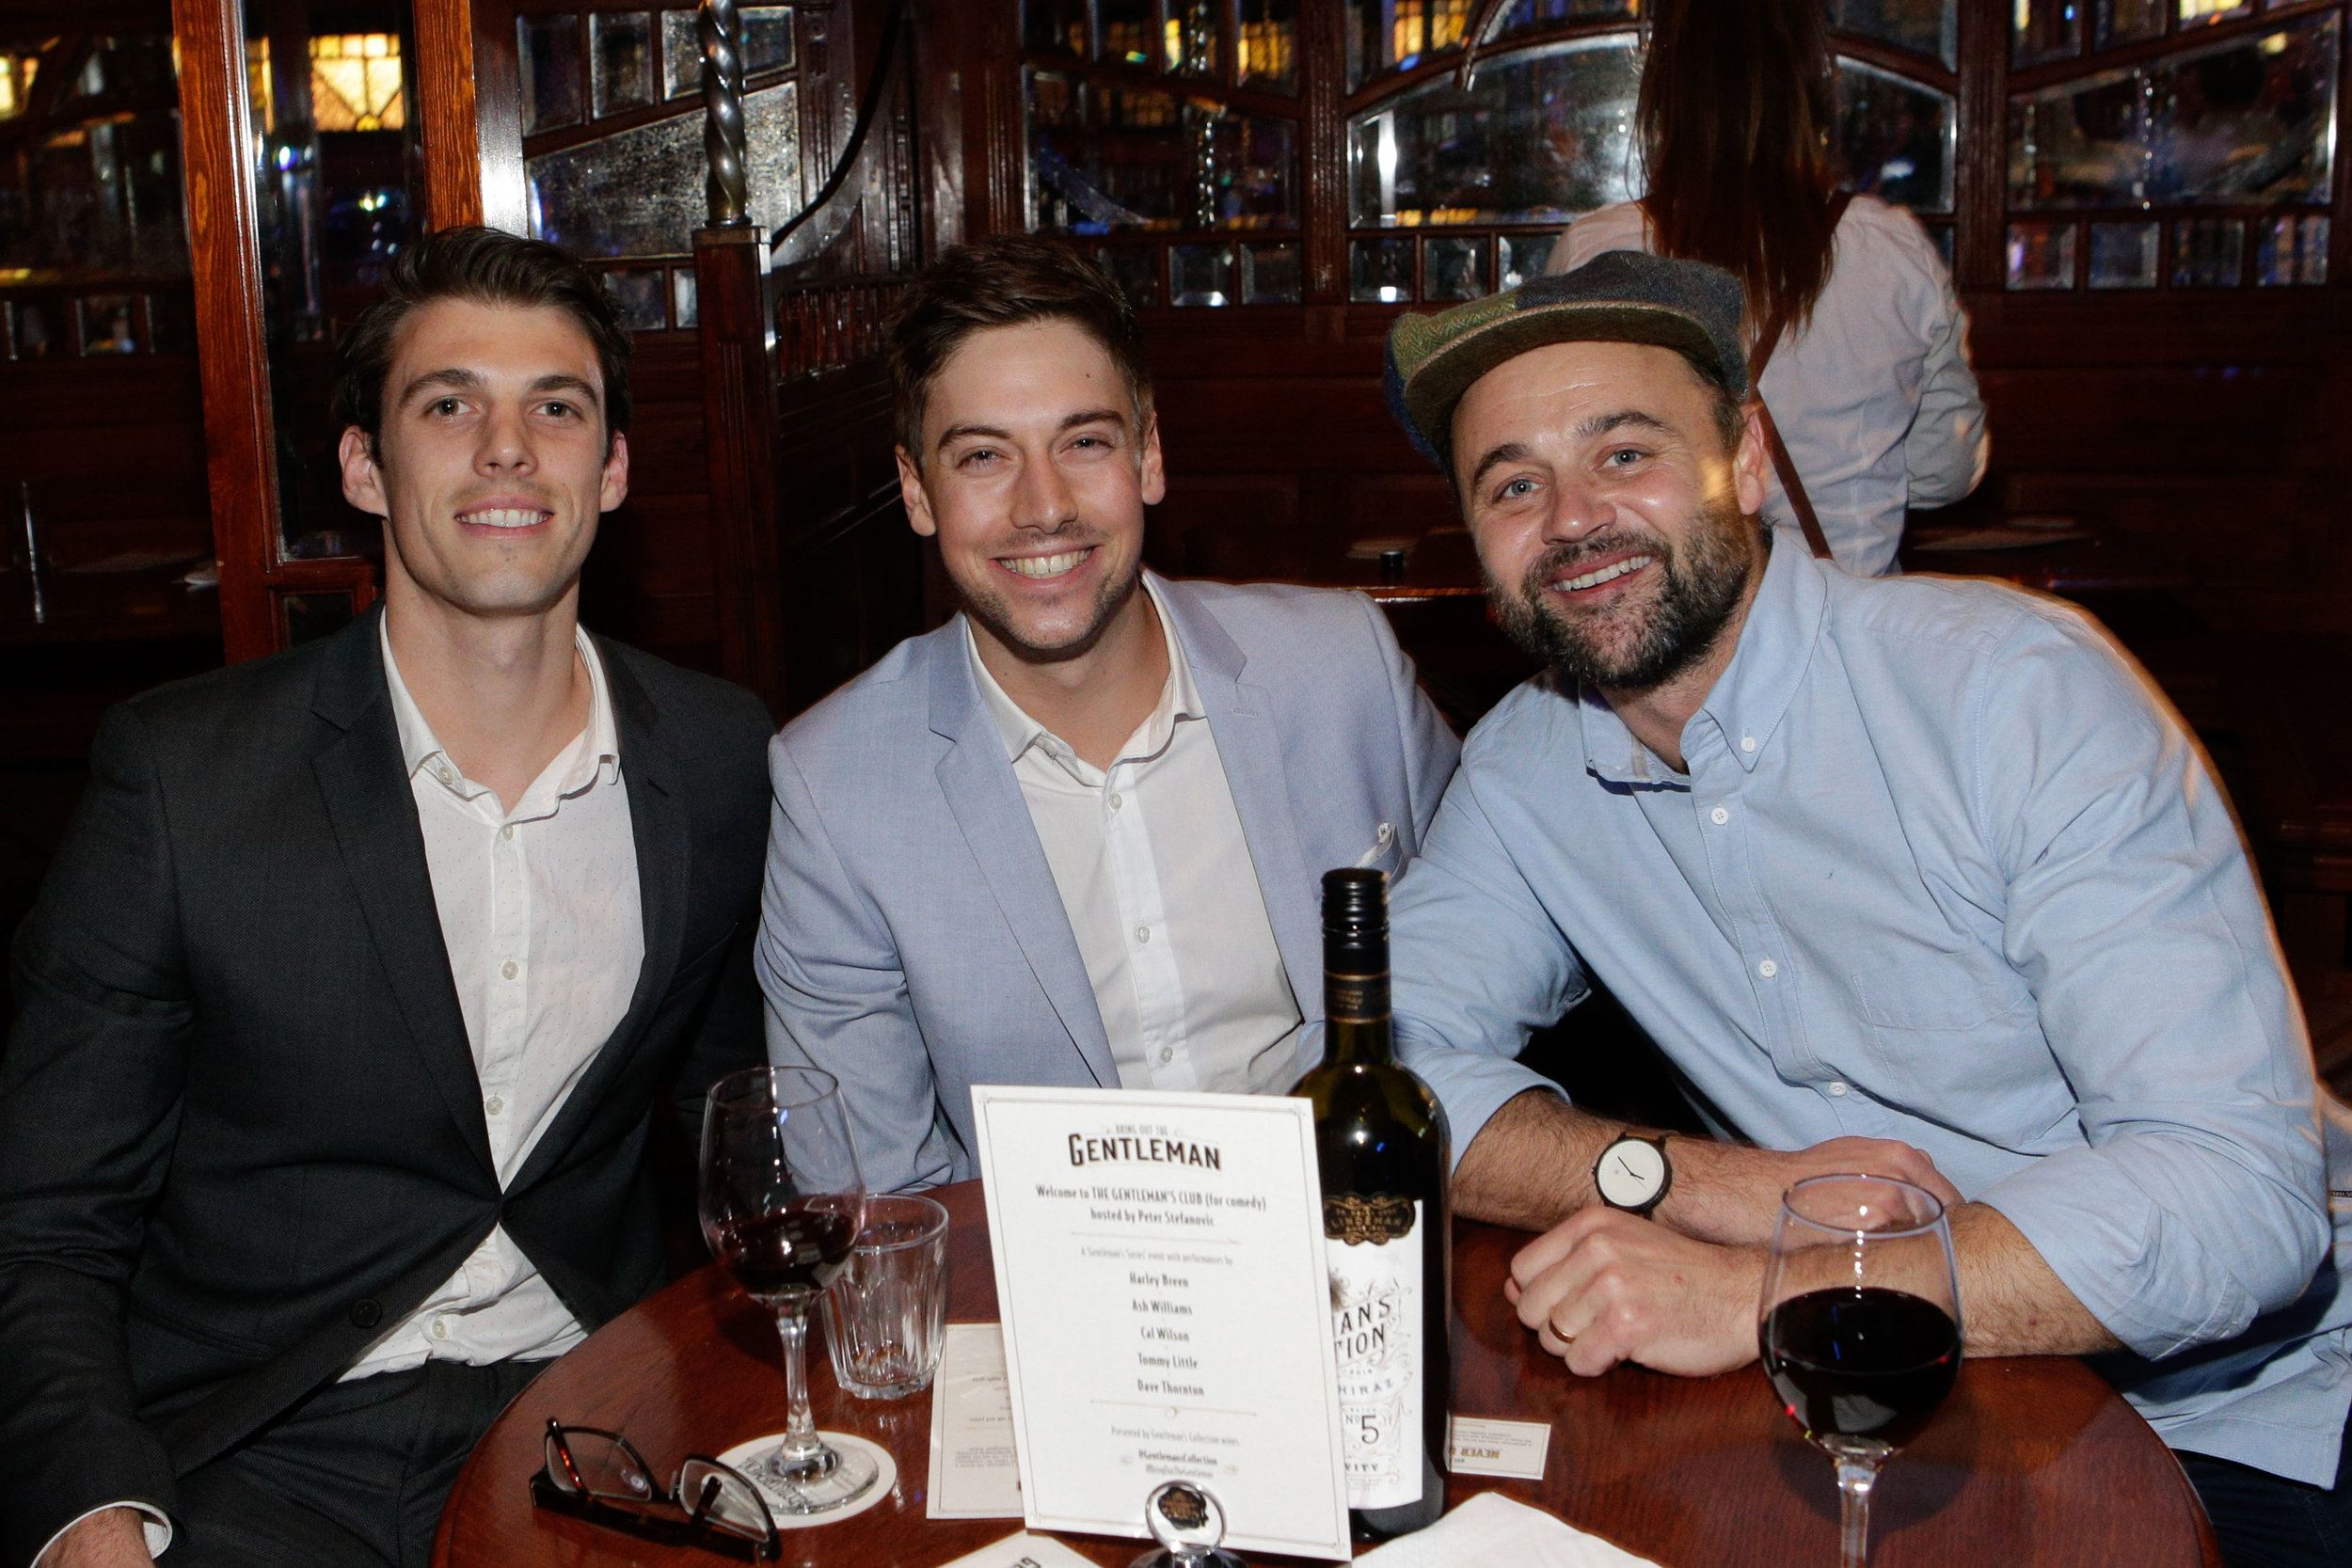 gentlemans-collection-comedy-night-series-4-2017-lincoln-younes-gyton-grantley.jpg